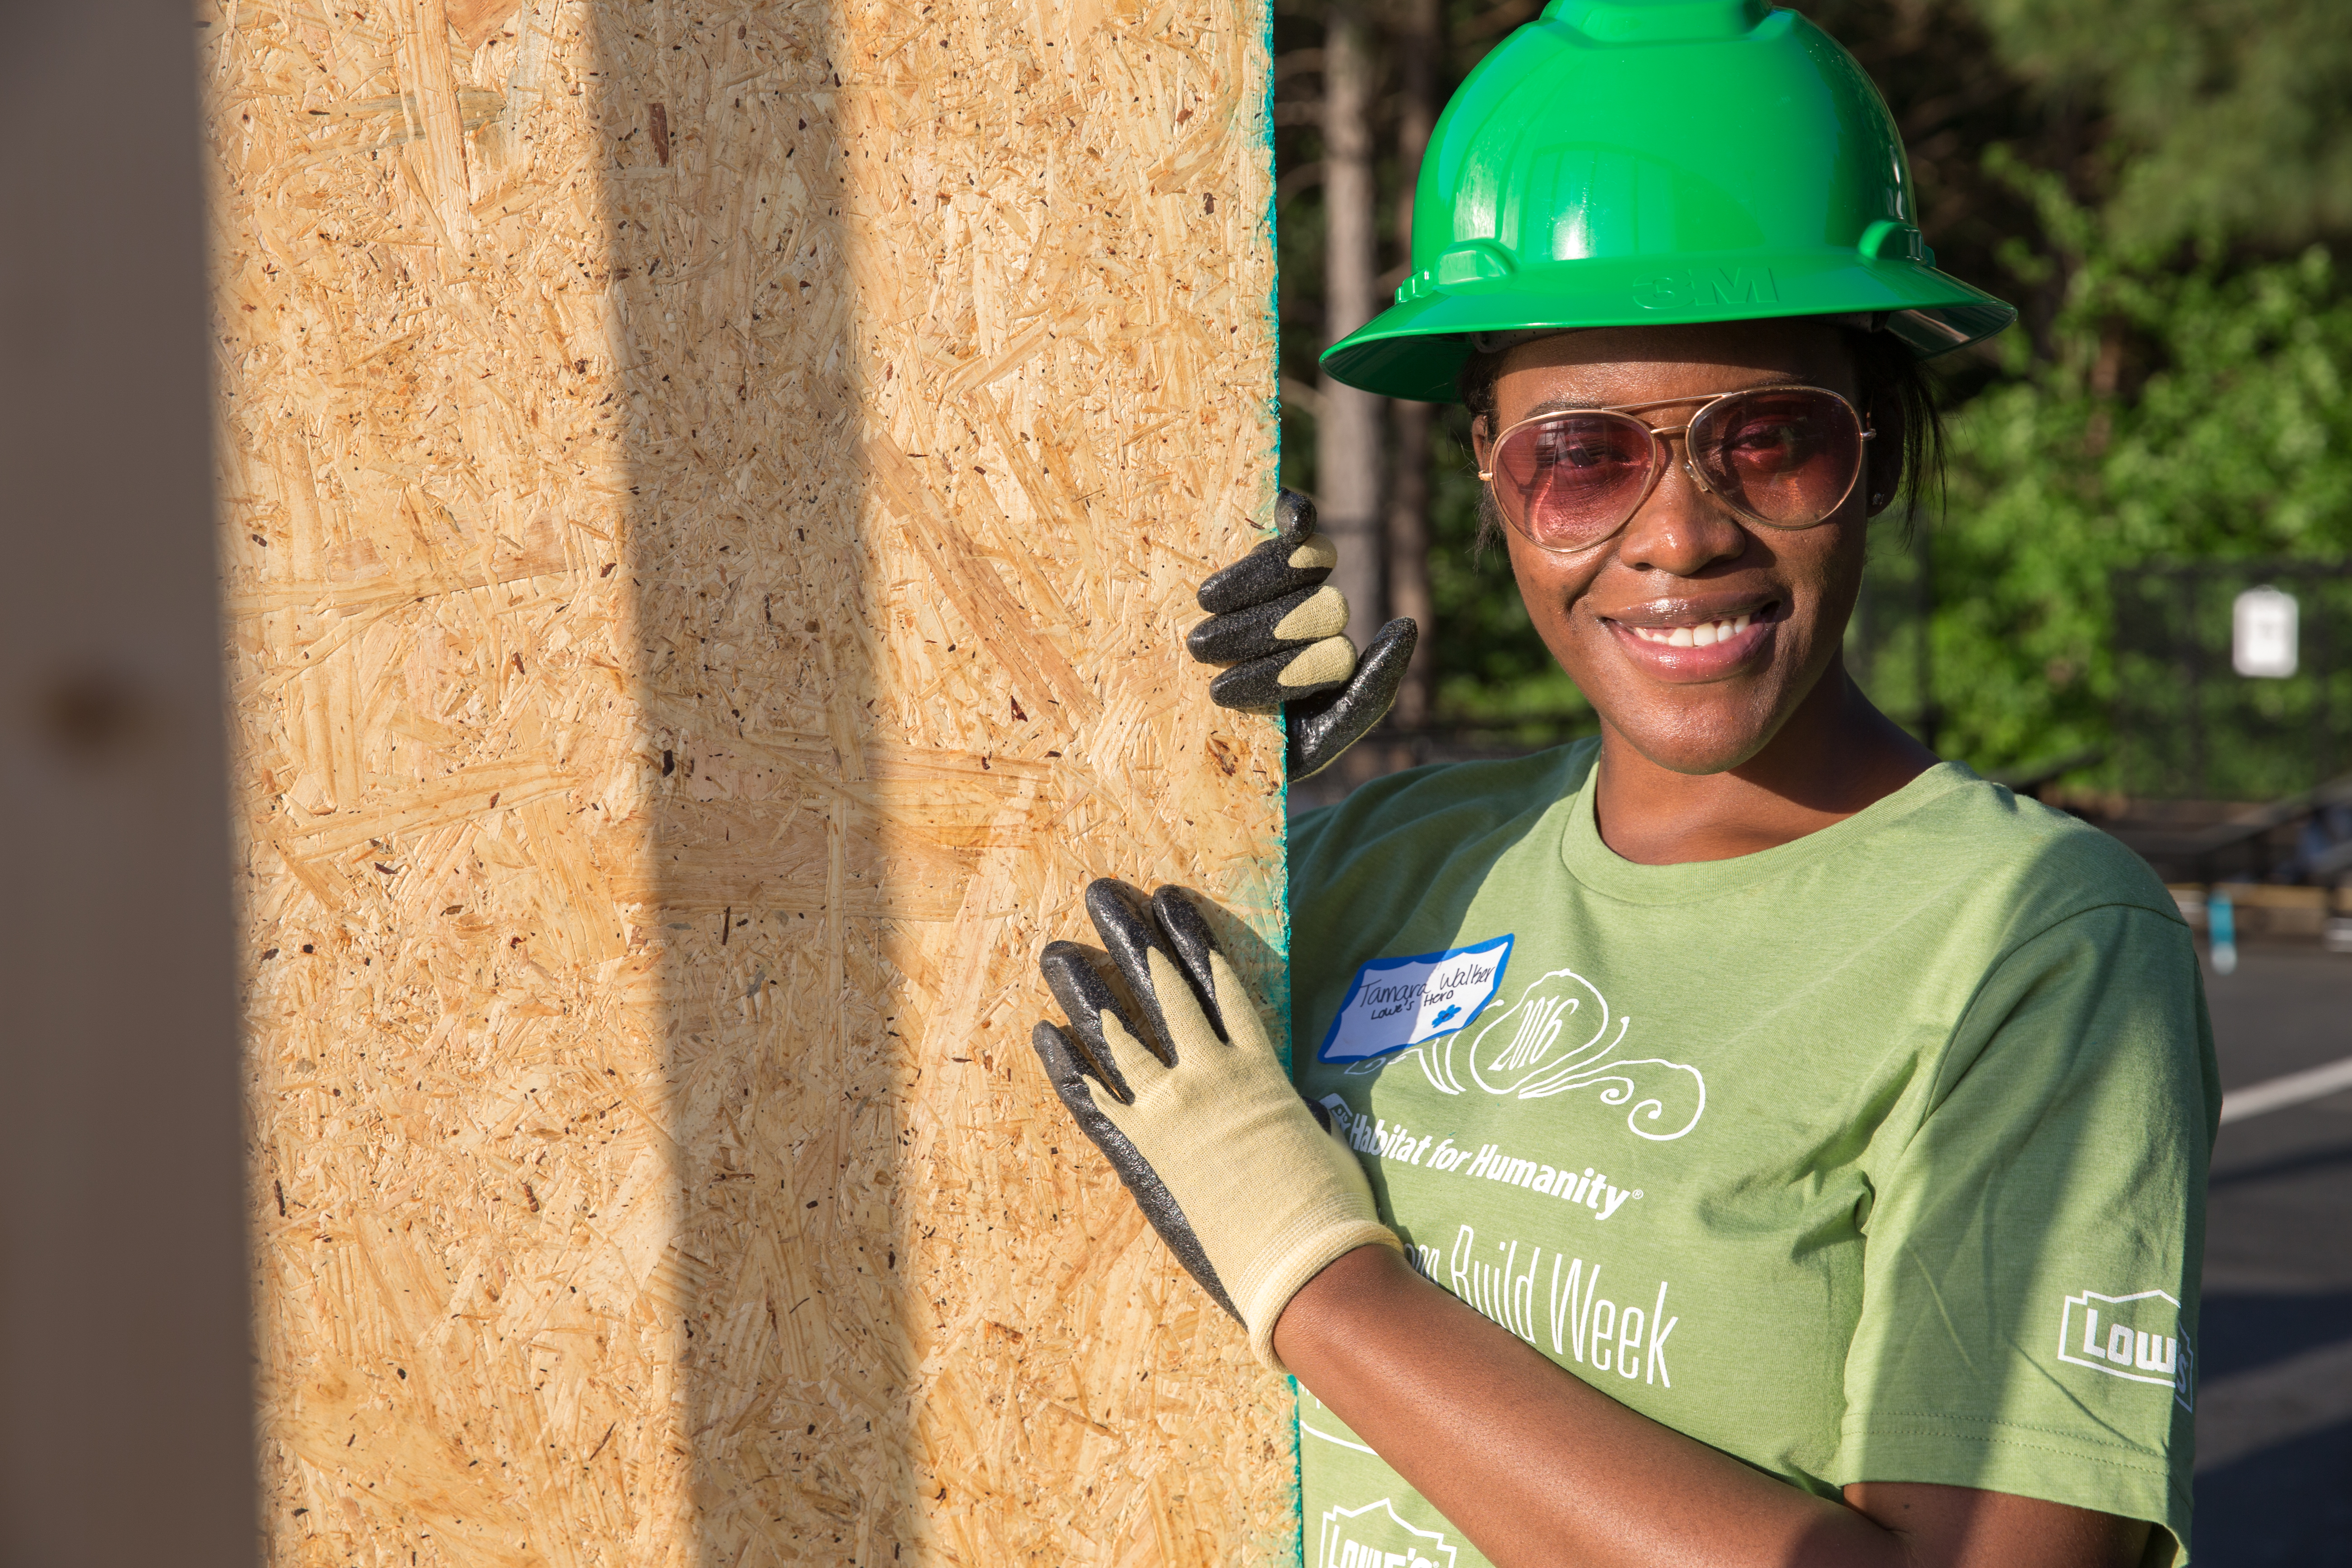 Habitat Volunteer